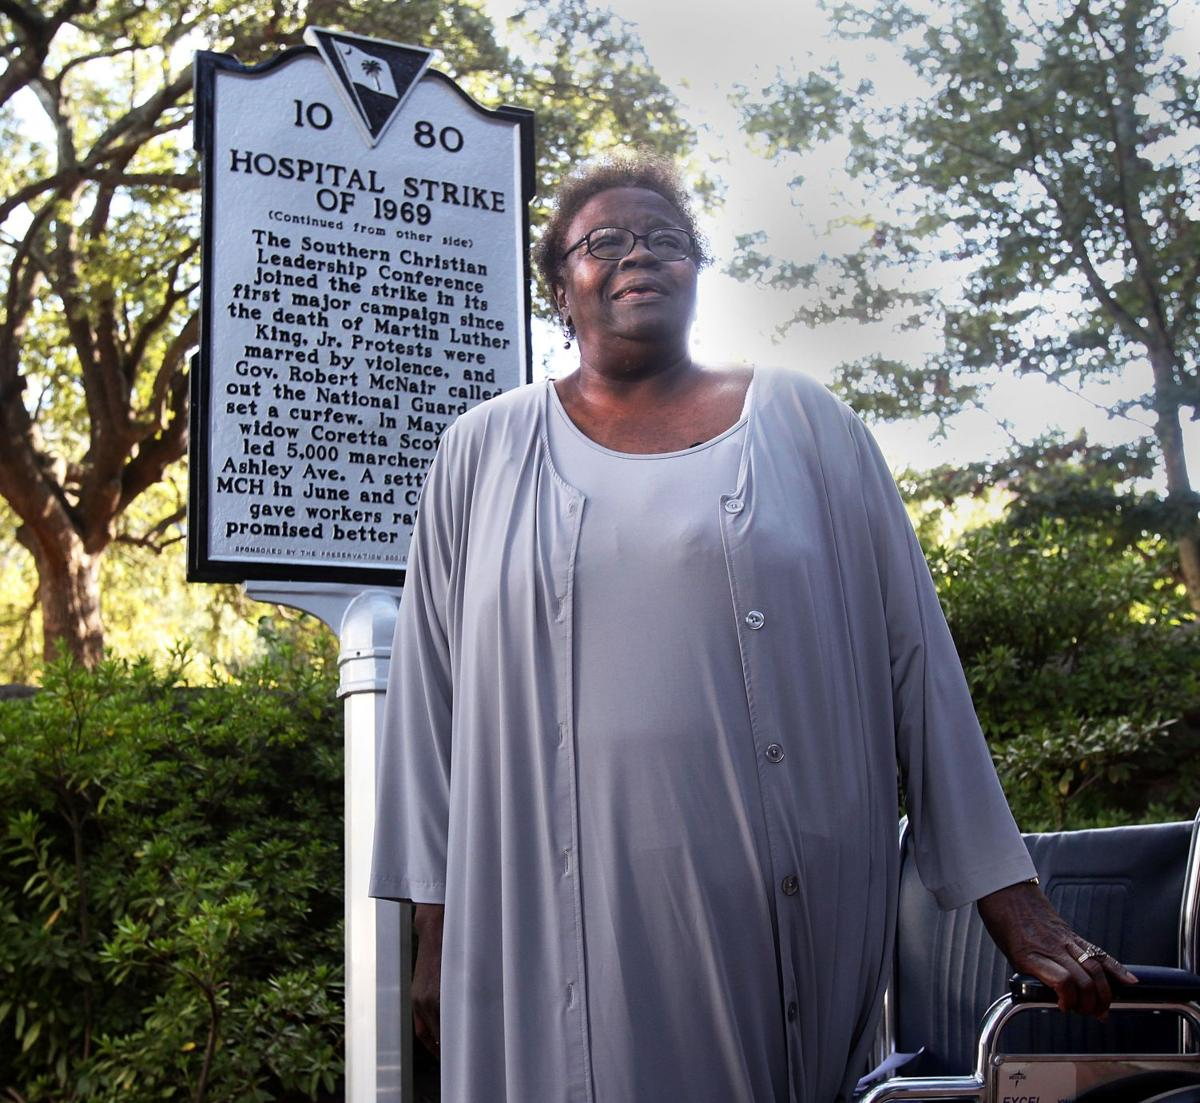 Historical marker in need of makeover